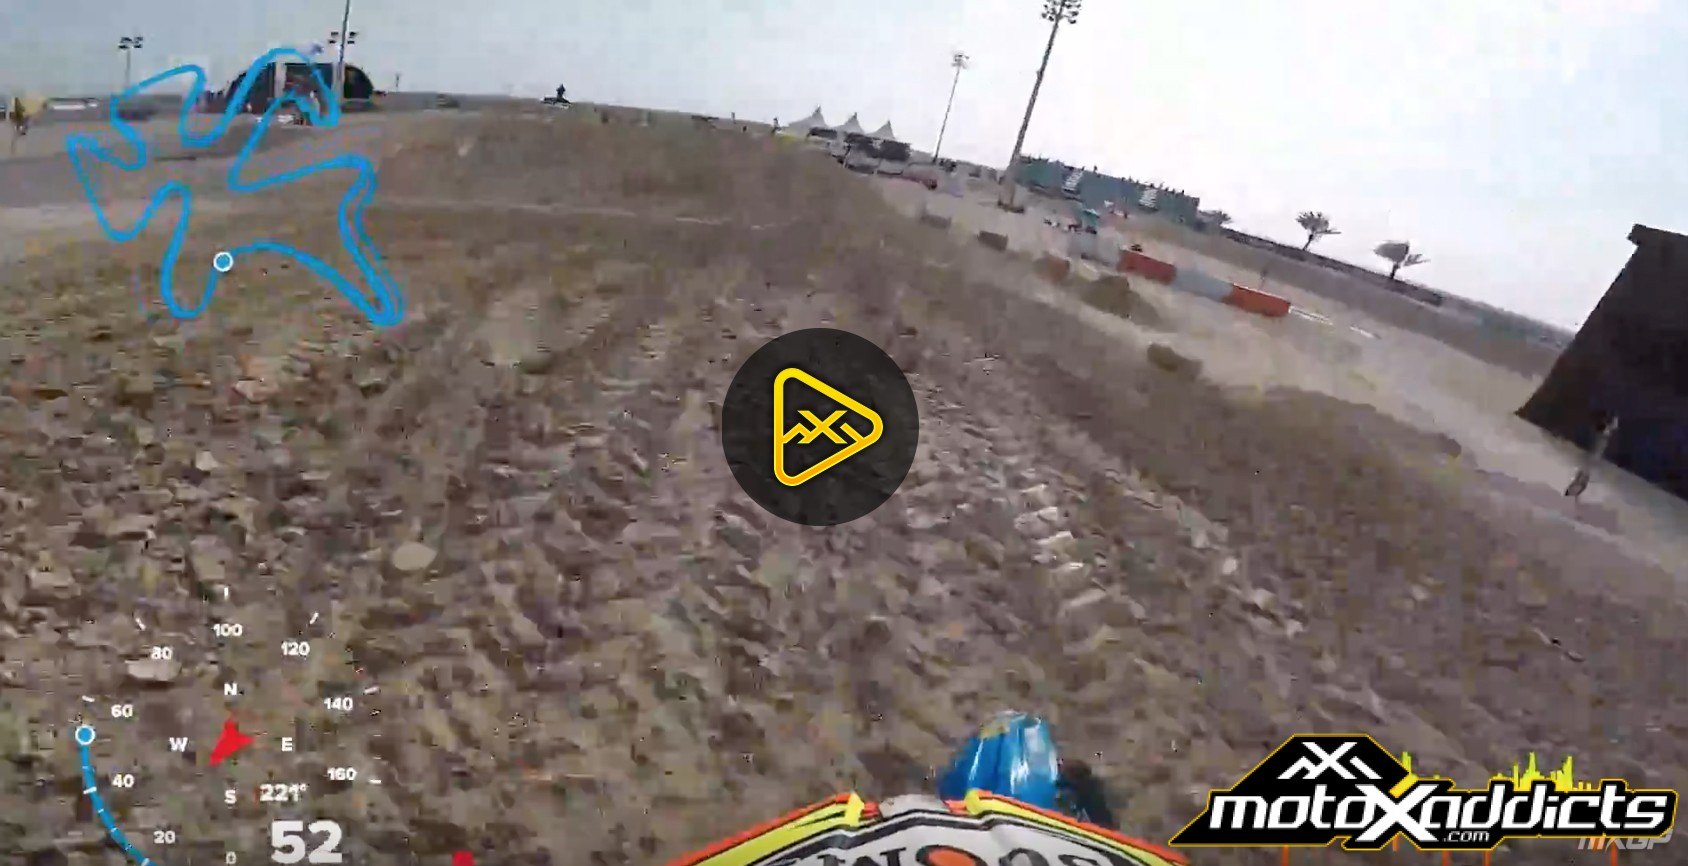 GoPro Samuele Bernardini at 2017 MXGP of Qatar